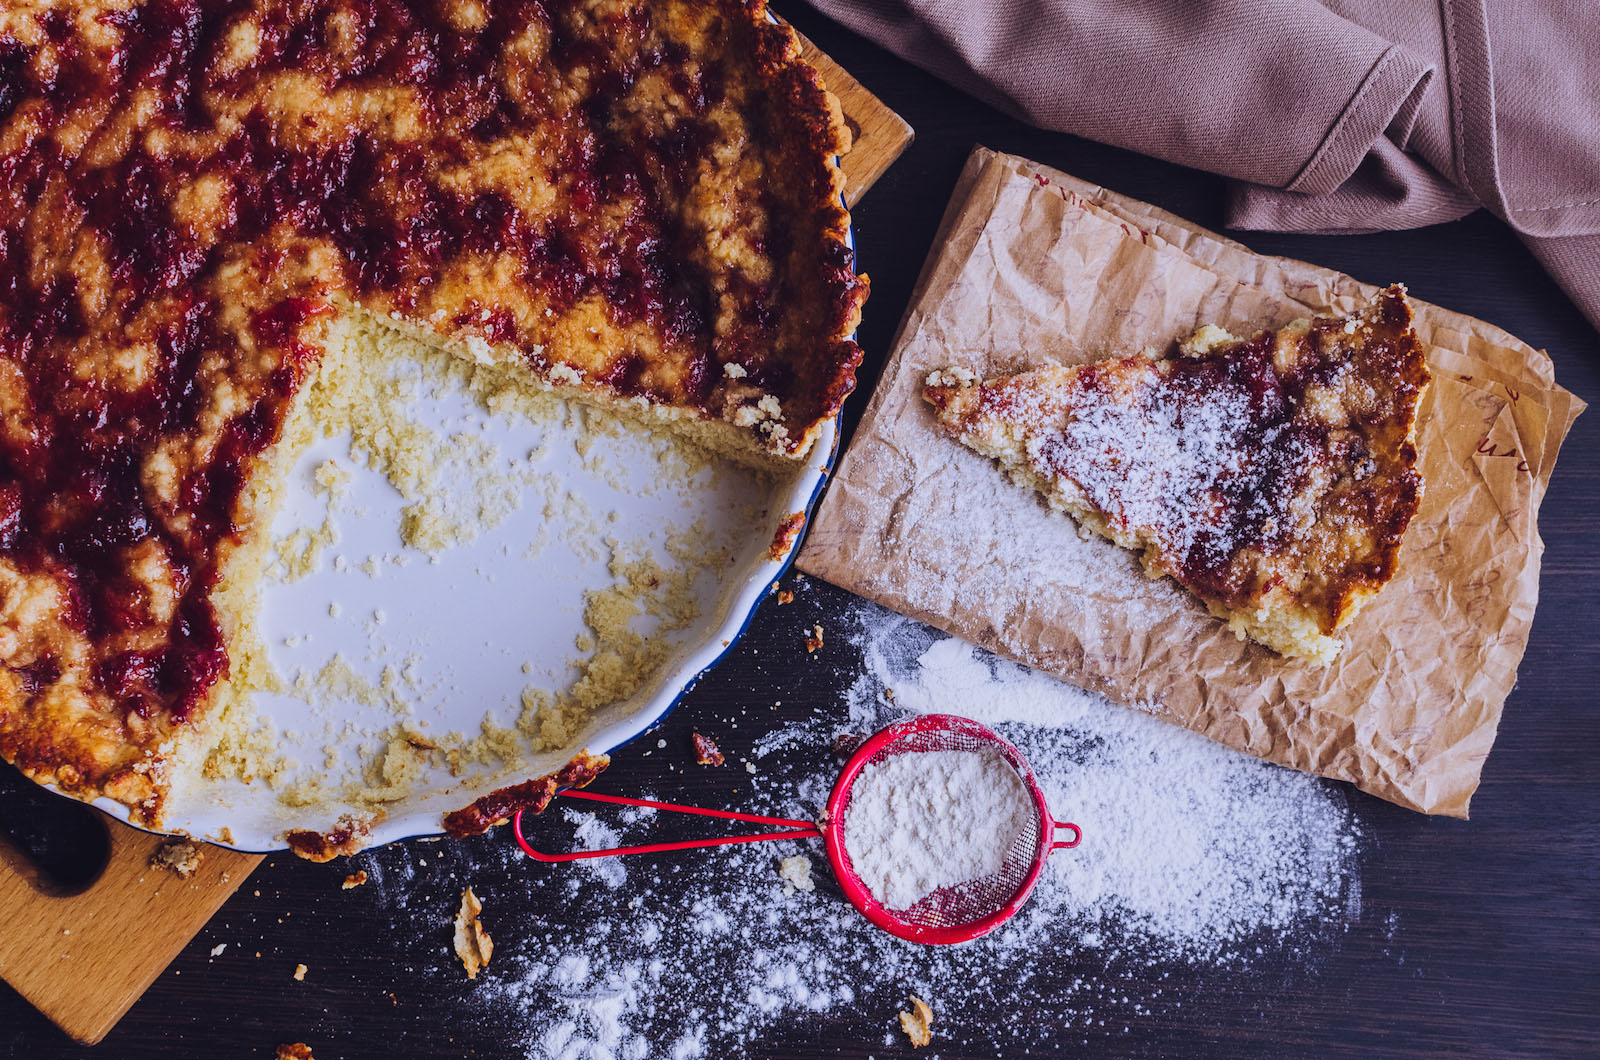 Tart with amaretti biscuits with custard